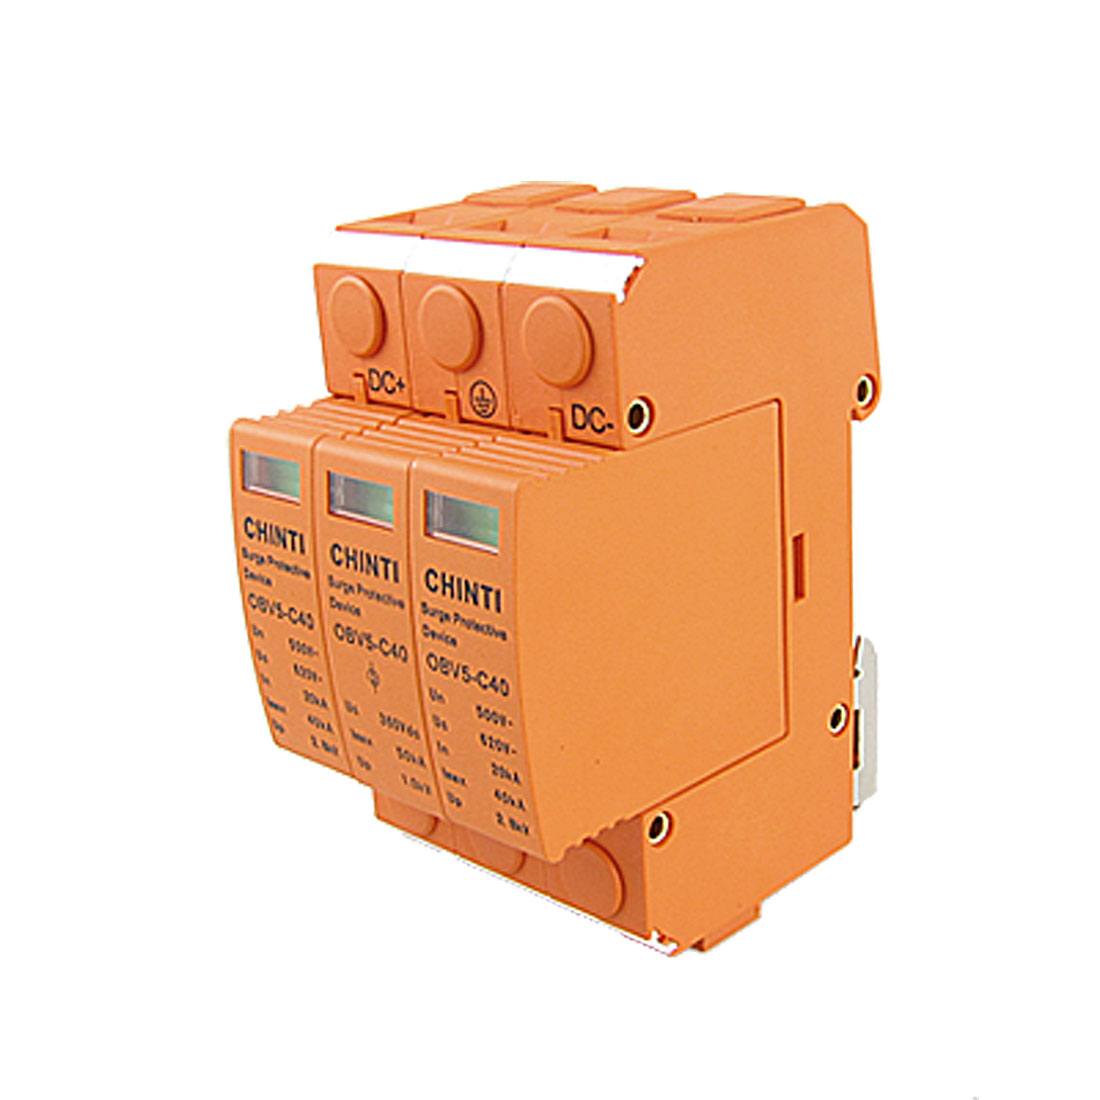 500V DC Solar System Photovoltaic Surge Protector Device